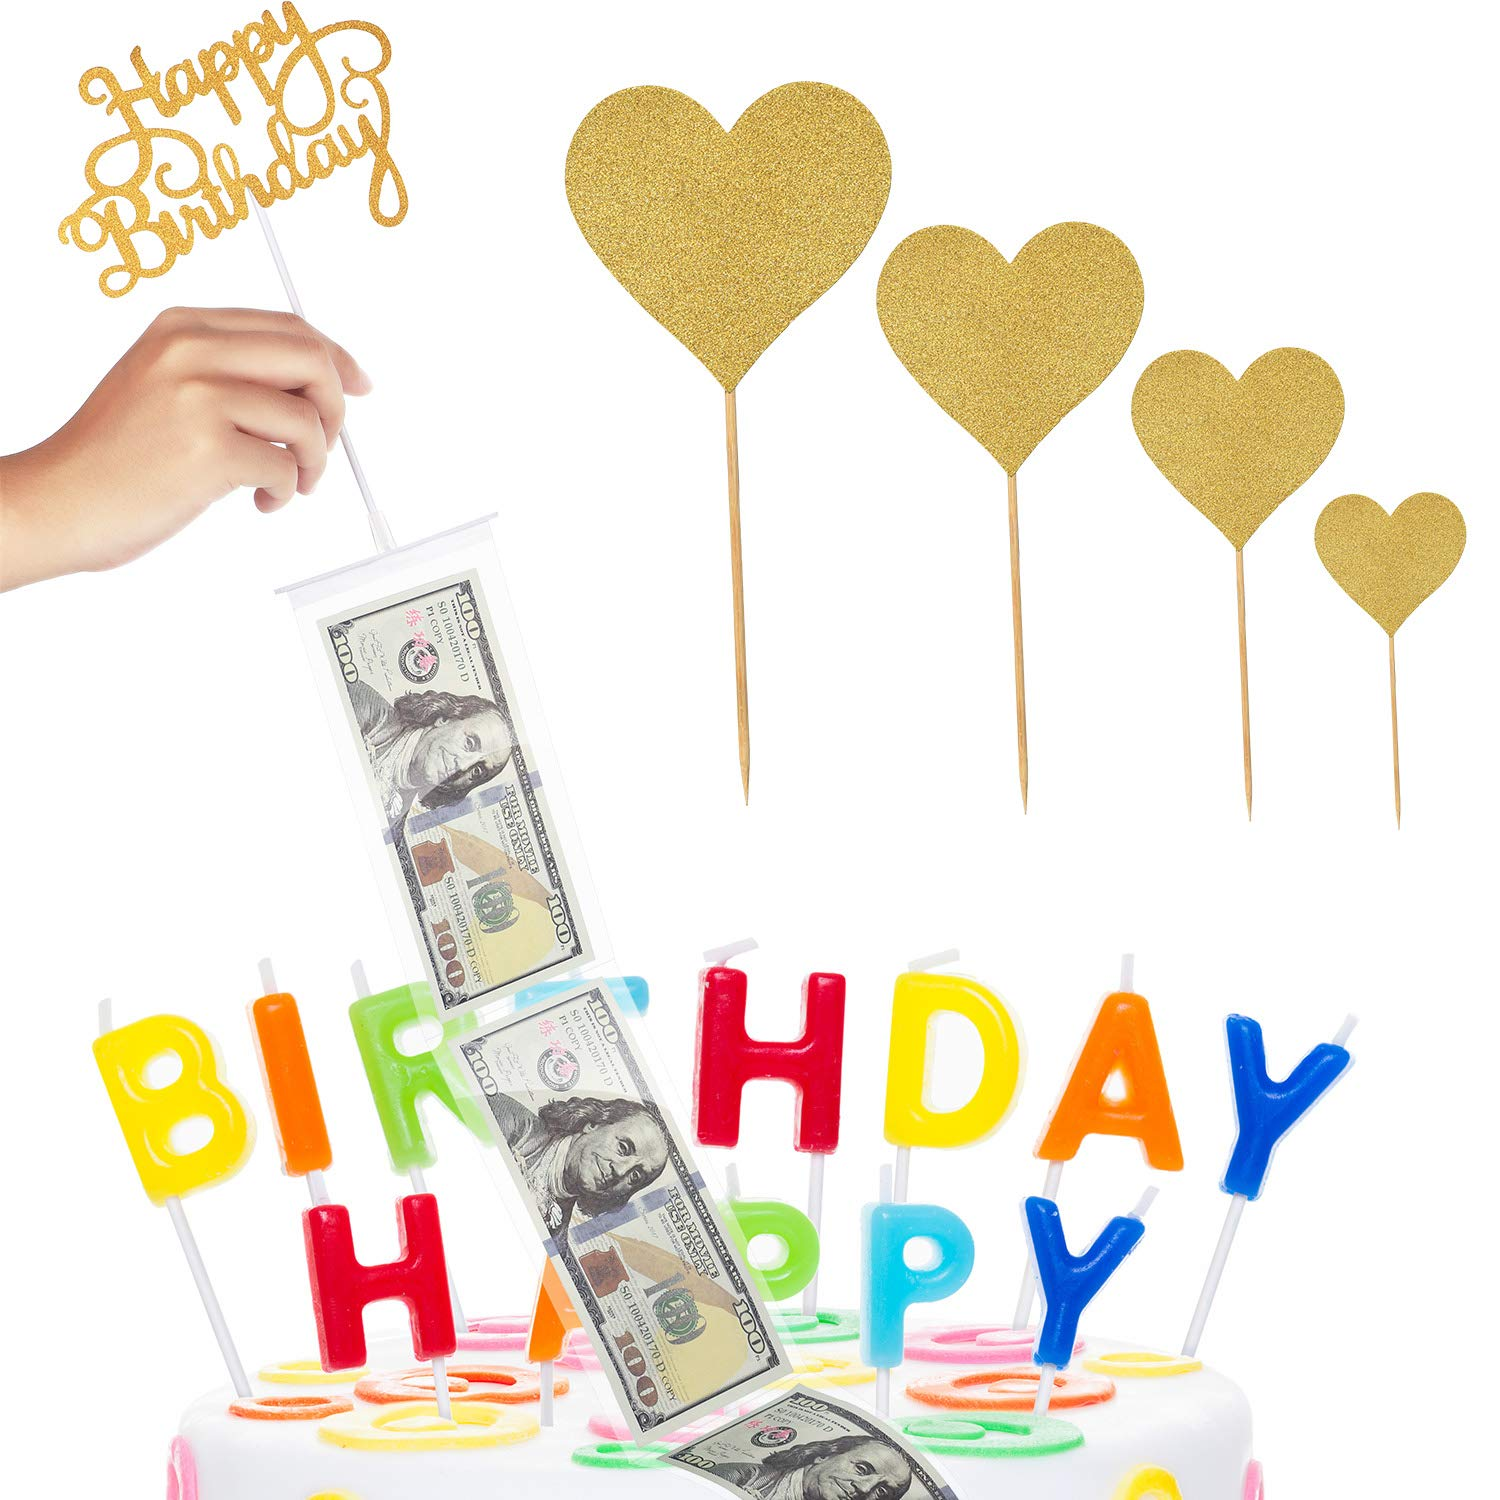 Cake Money Box Set Glitter Heart Cake Toppers Happy Birthday Cake Topper for Birthday Party Decoration by Boao